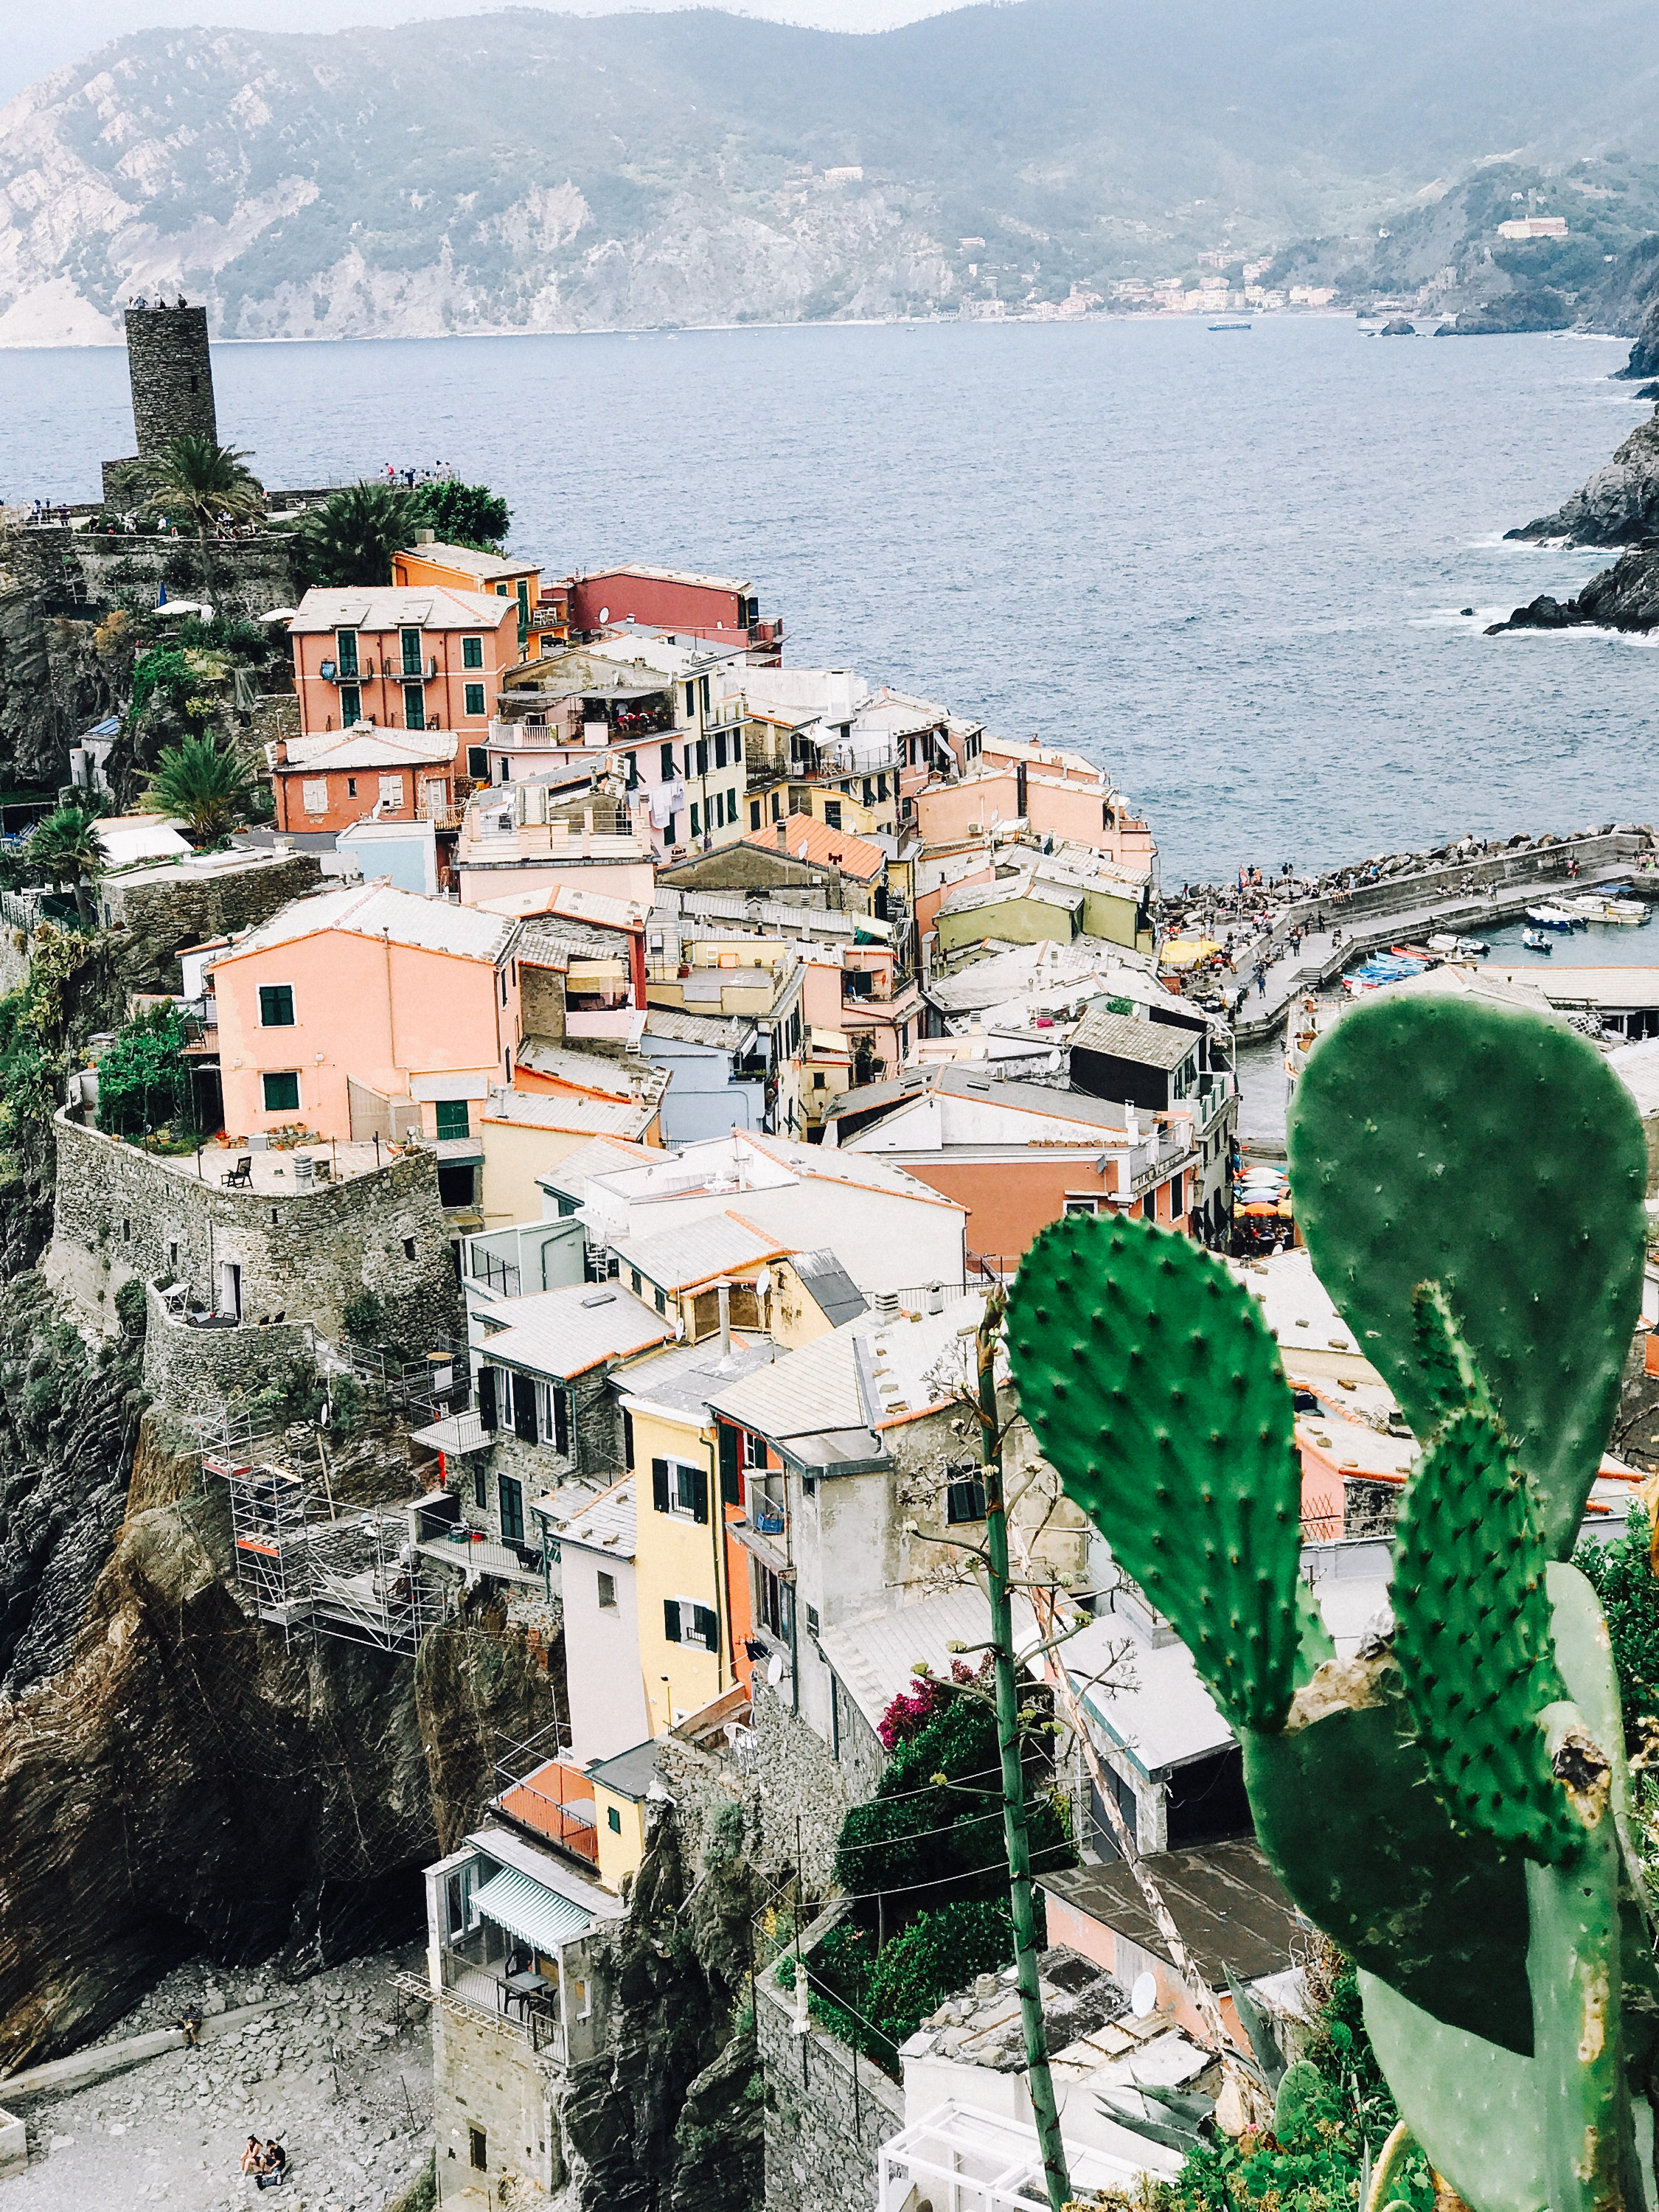 Our Europe Travel Blog Stop 3 Vernazza 7.jpg